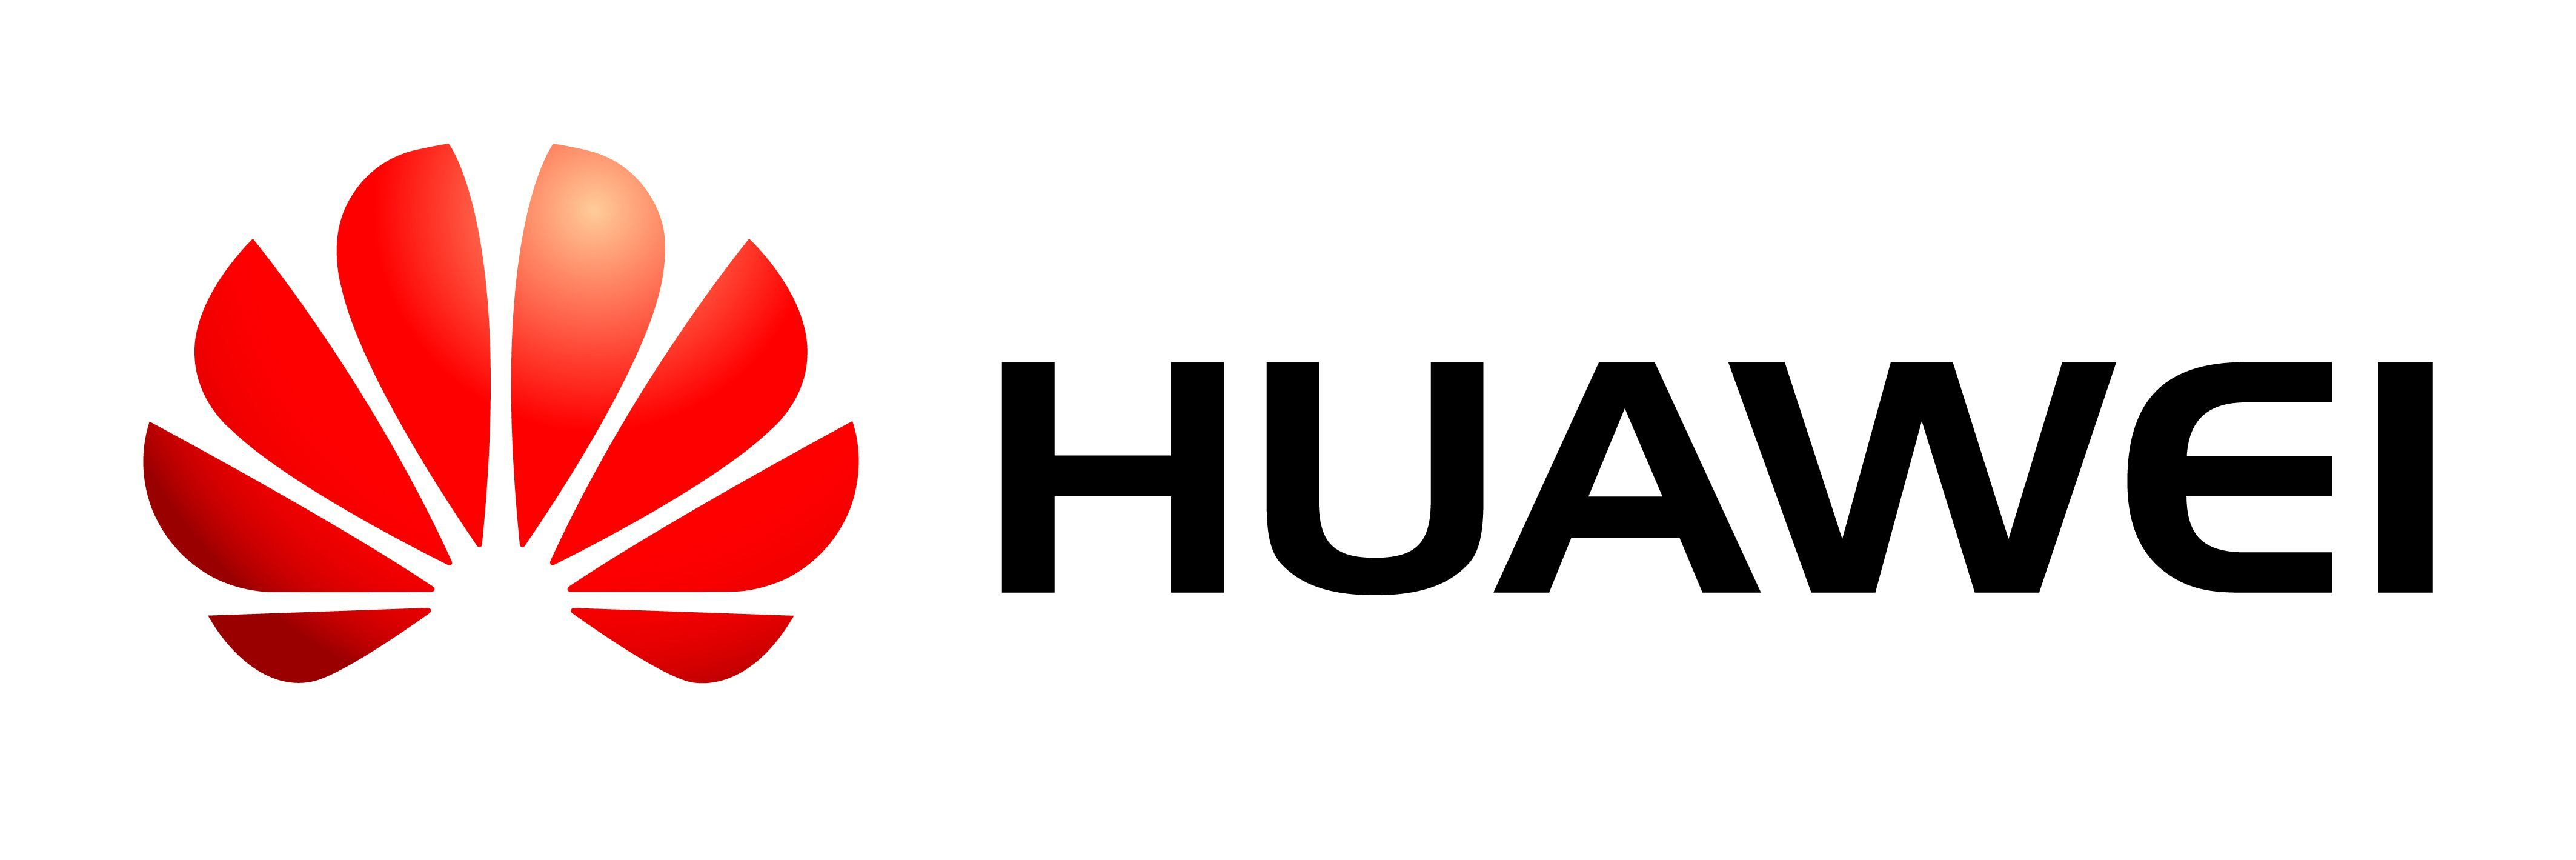 Huawei China US Donald Trump 5G cellular communications